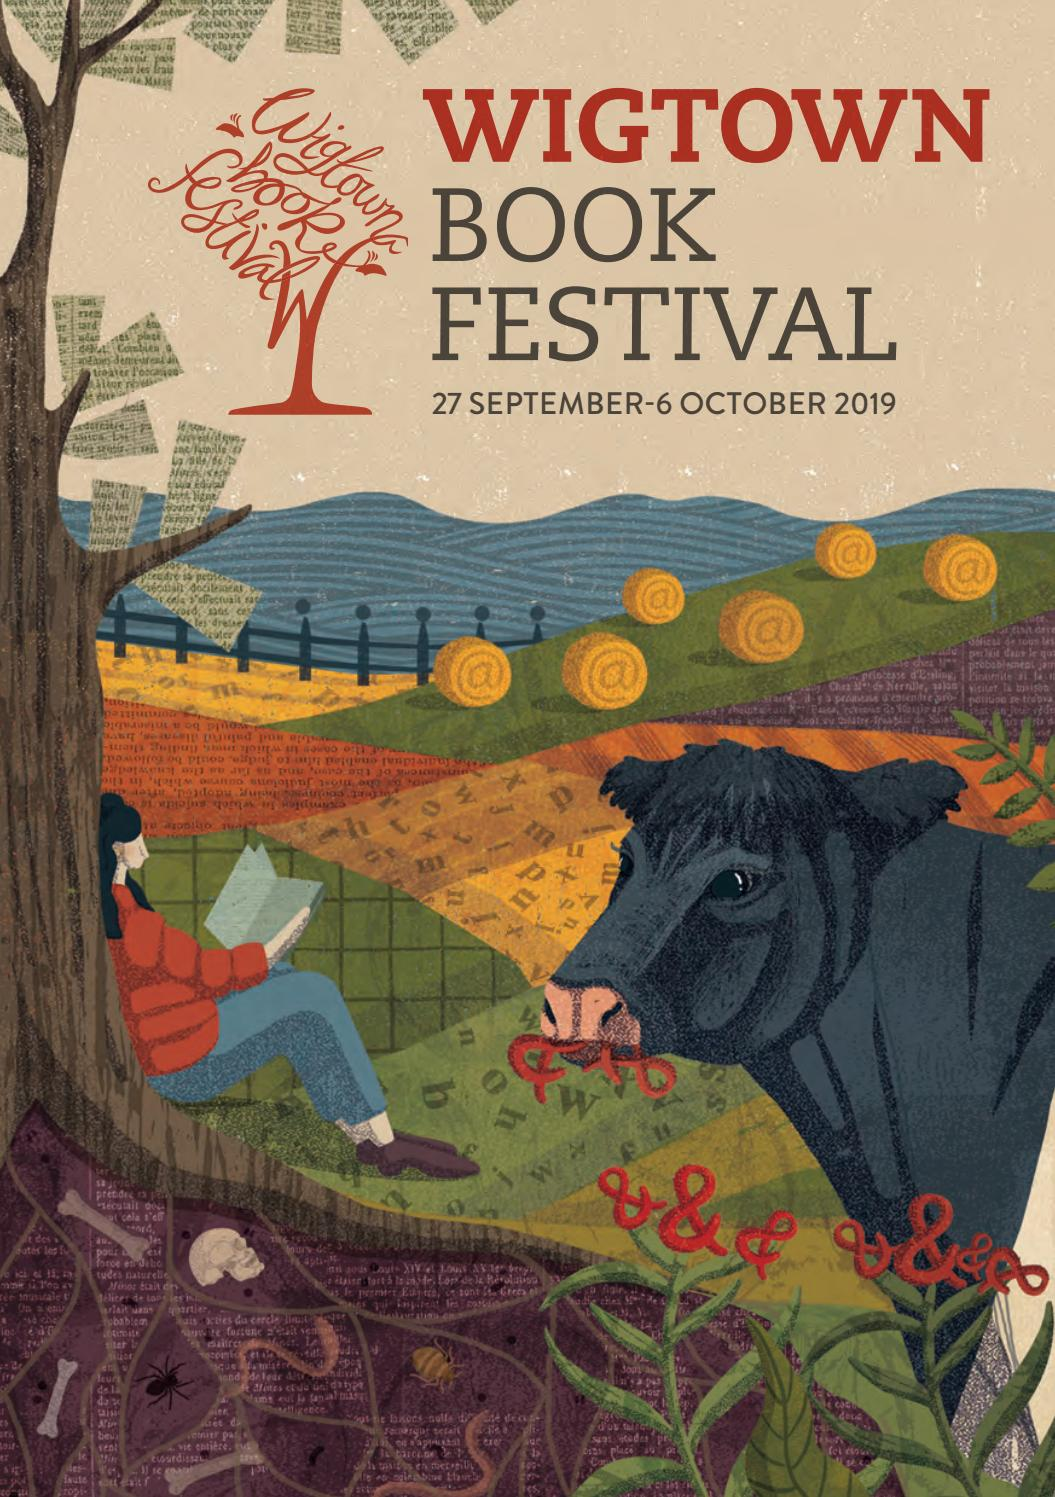 Wigtown Book Festival 2019 by wigtownbookfestival - issuu